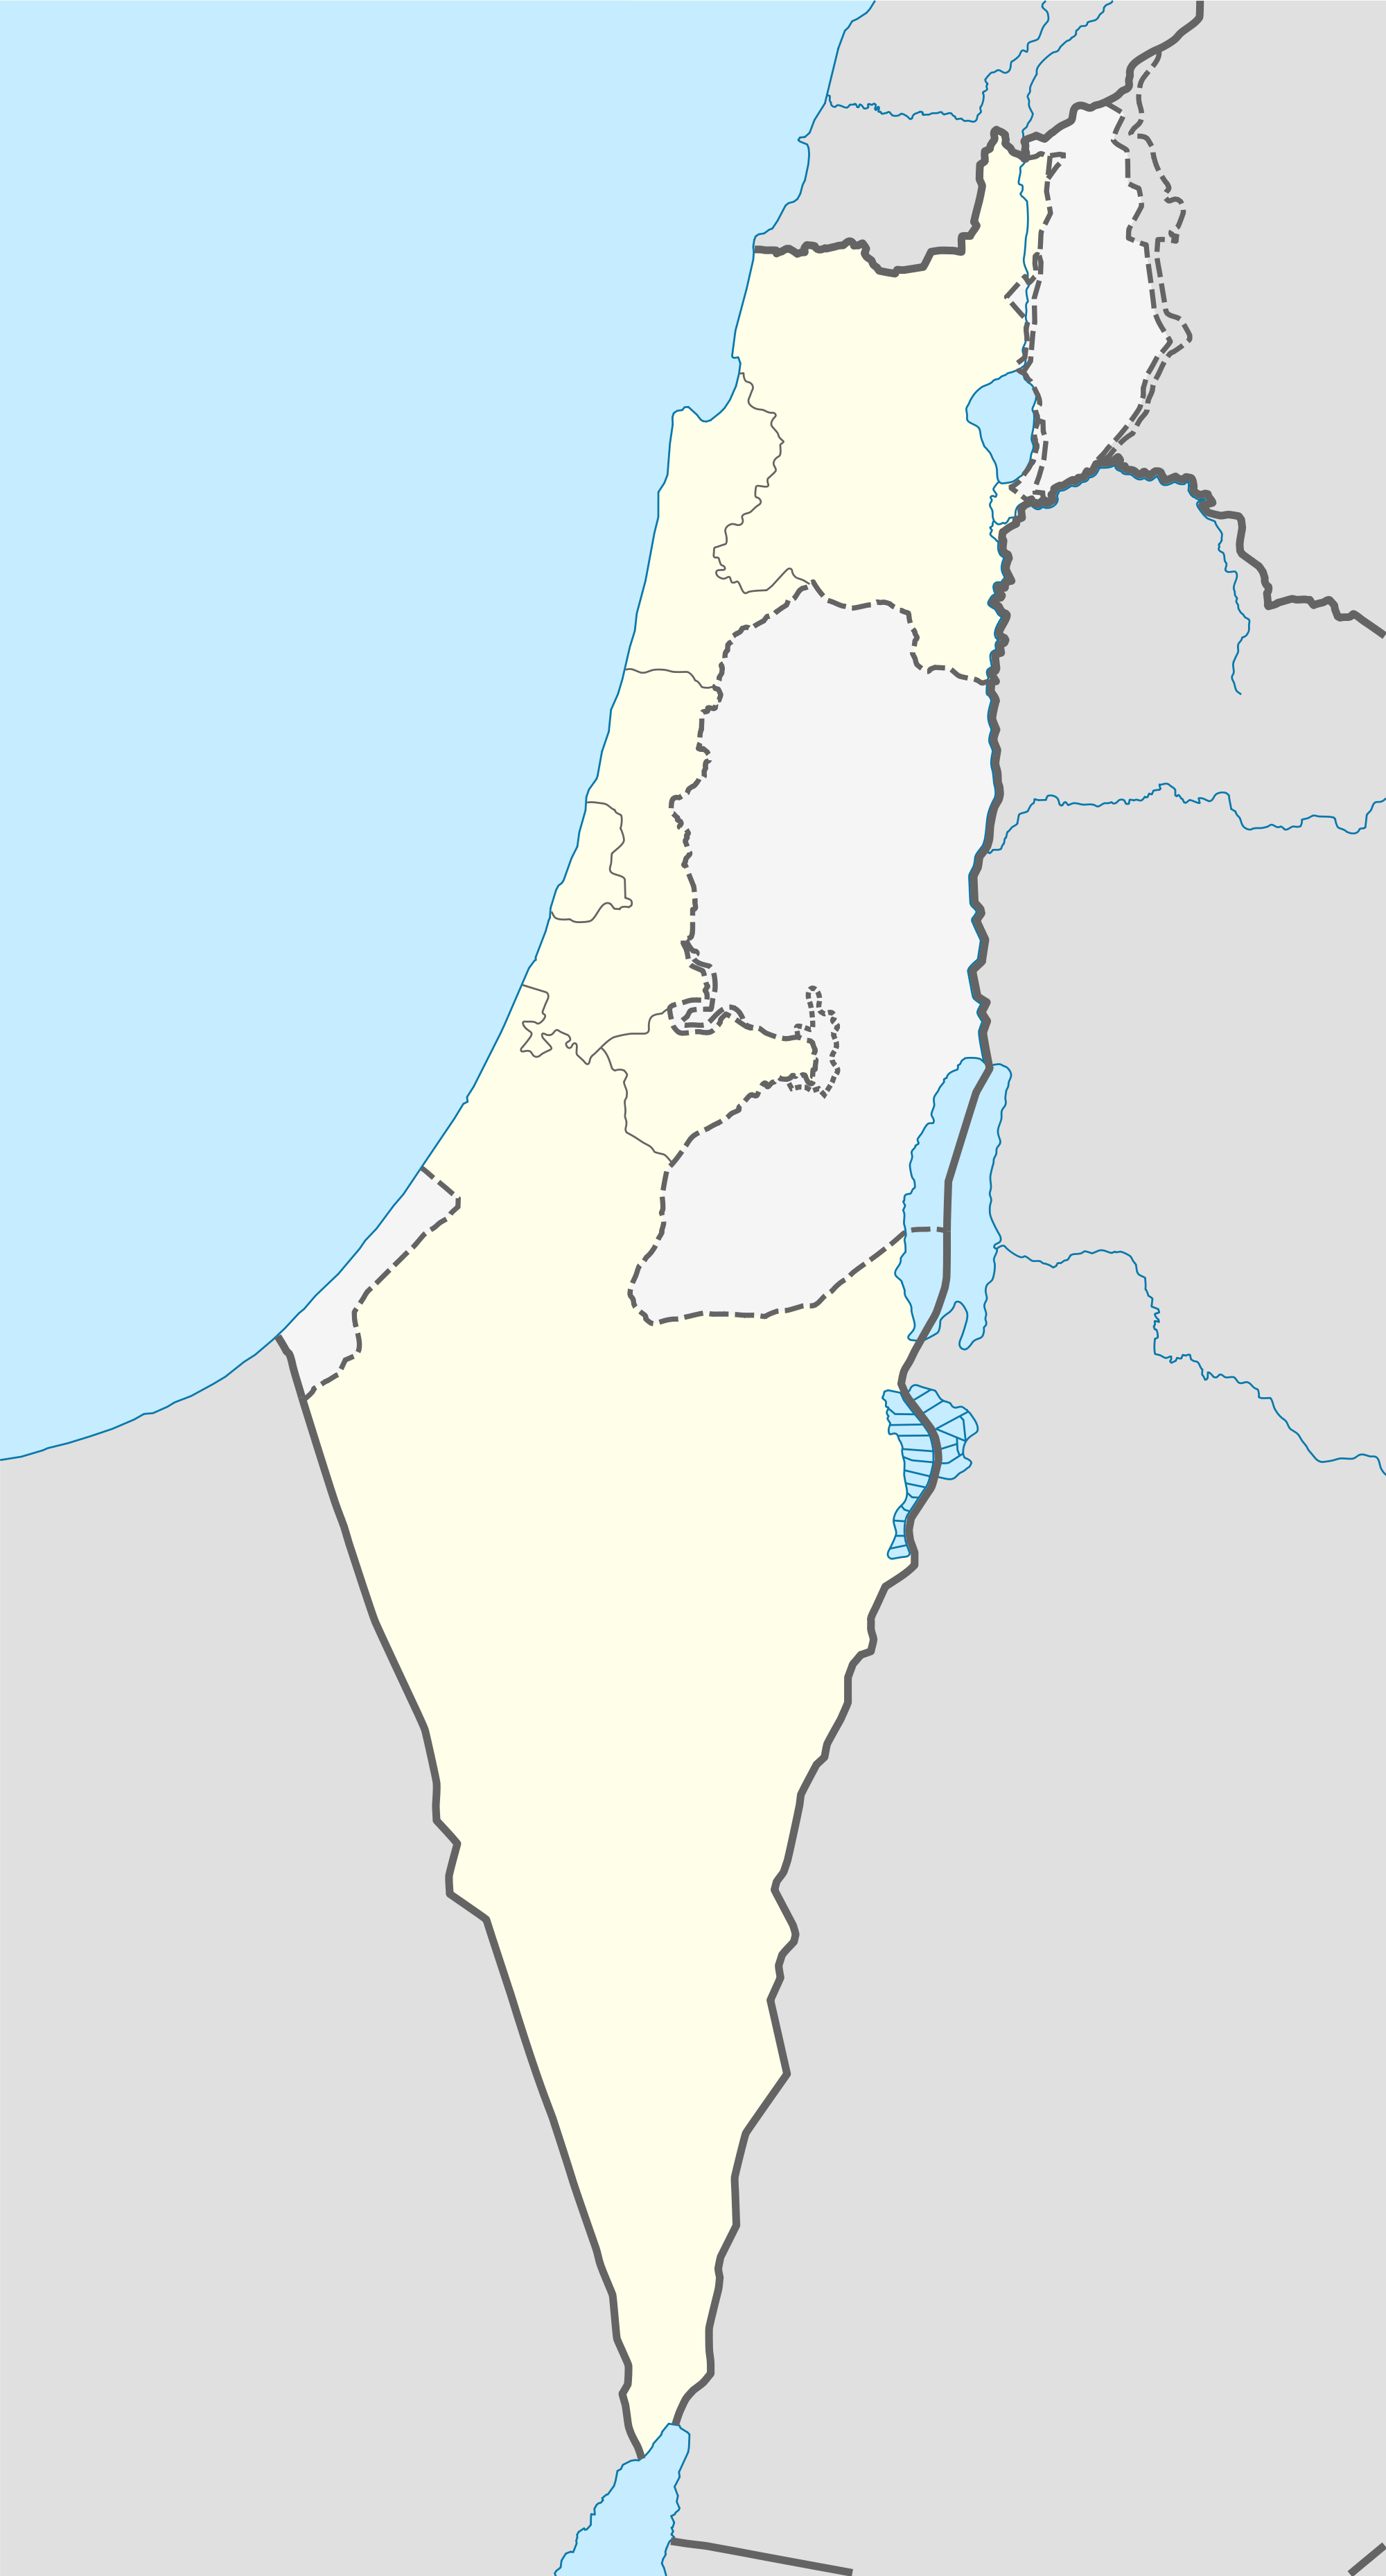 Image Israel Outline Mappng GTA Wiki FANDOM Powered By Wikia - Isreal map